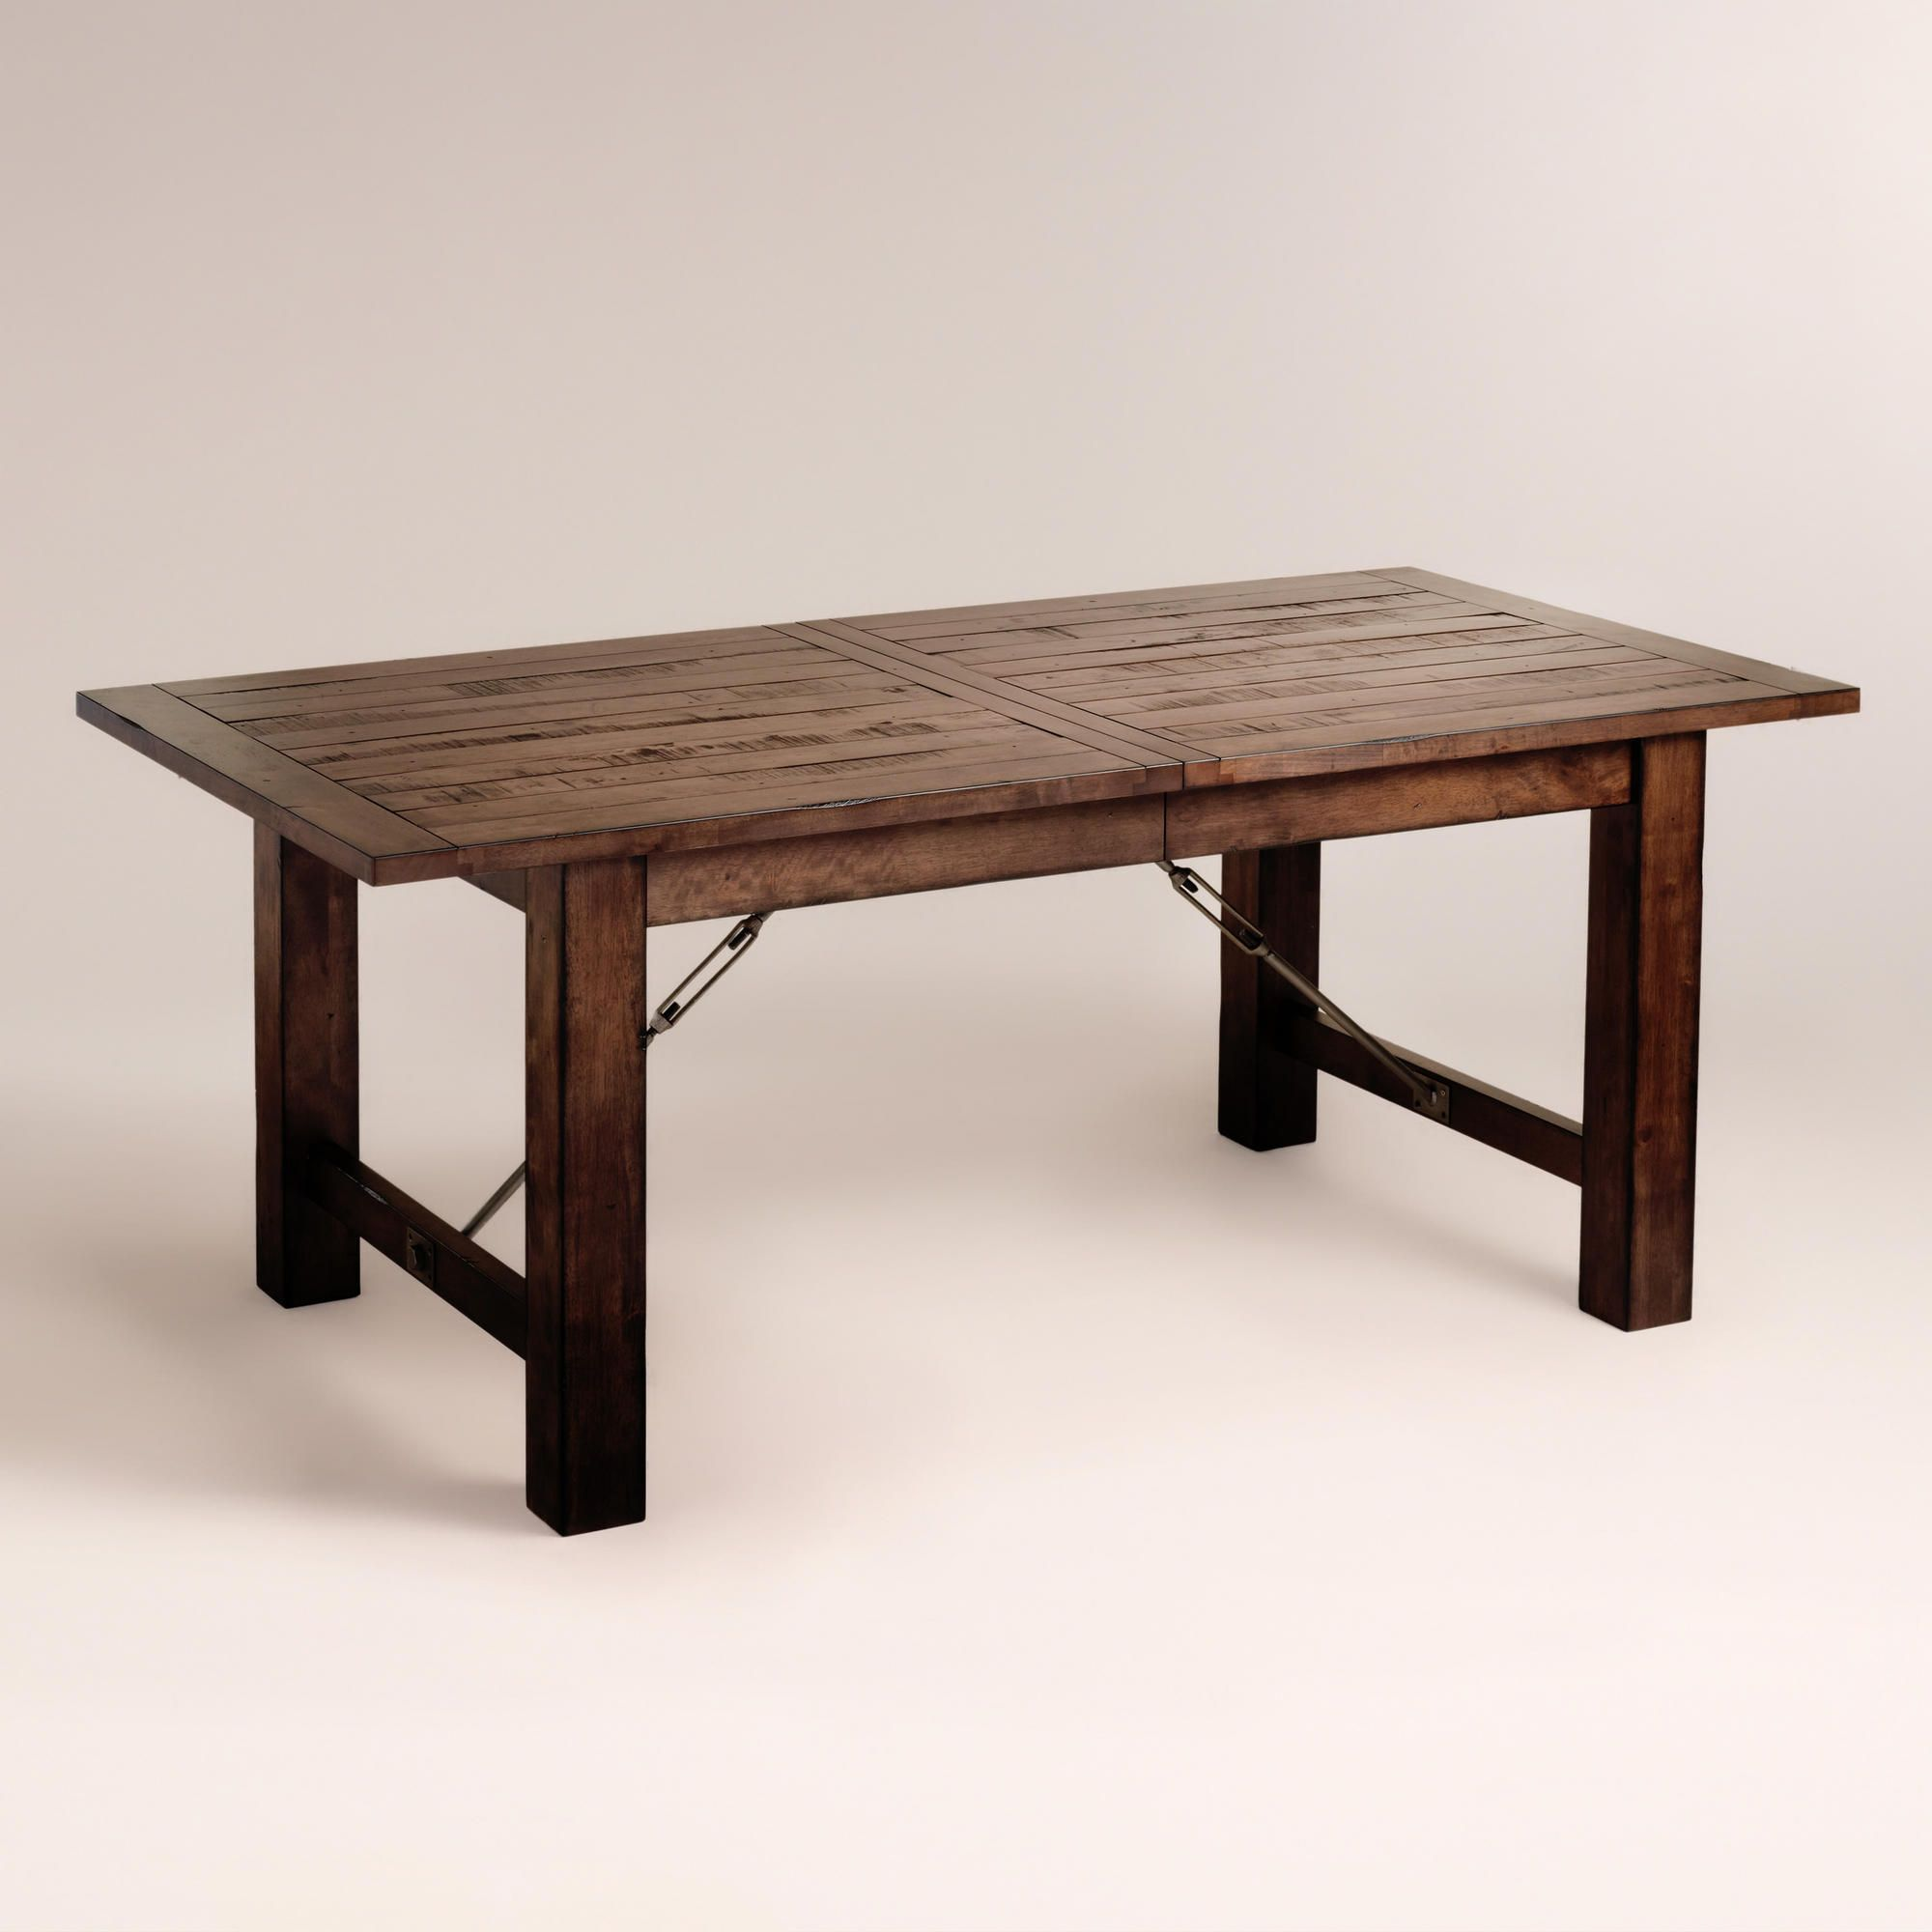 Garner Extension Dining Table World Market Rustic Dining Room Table World Market Dining Table Extension Dining Table